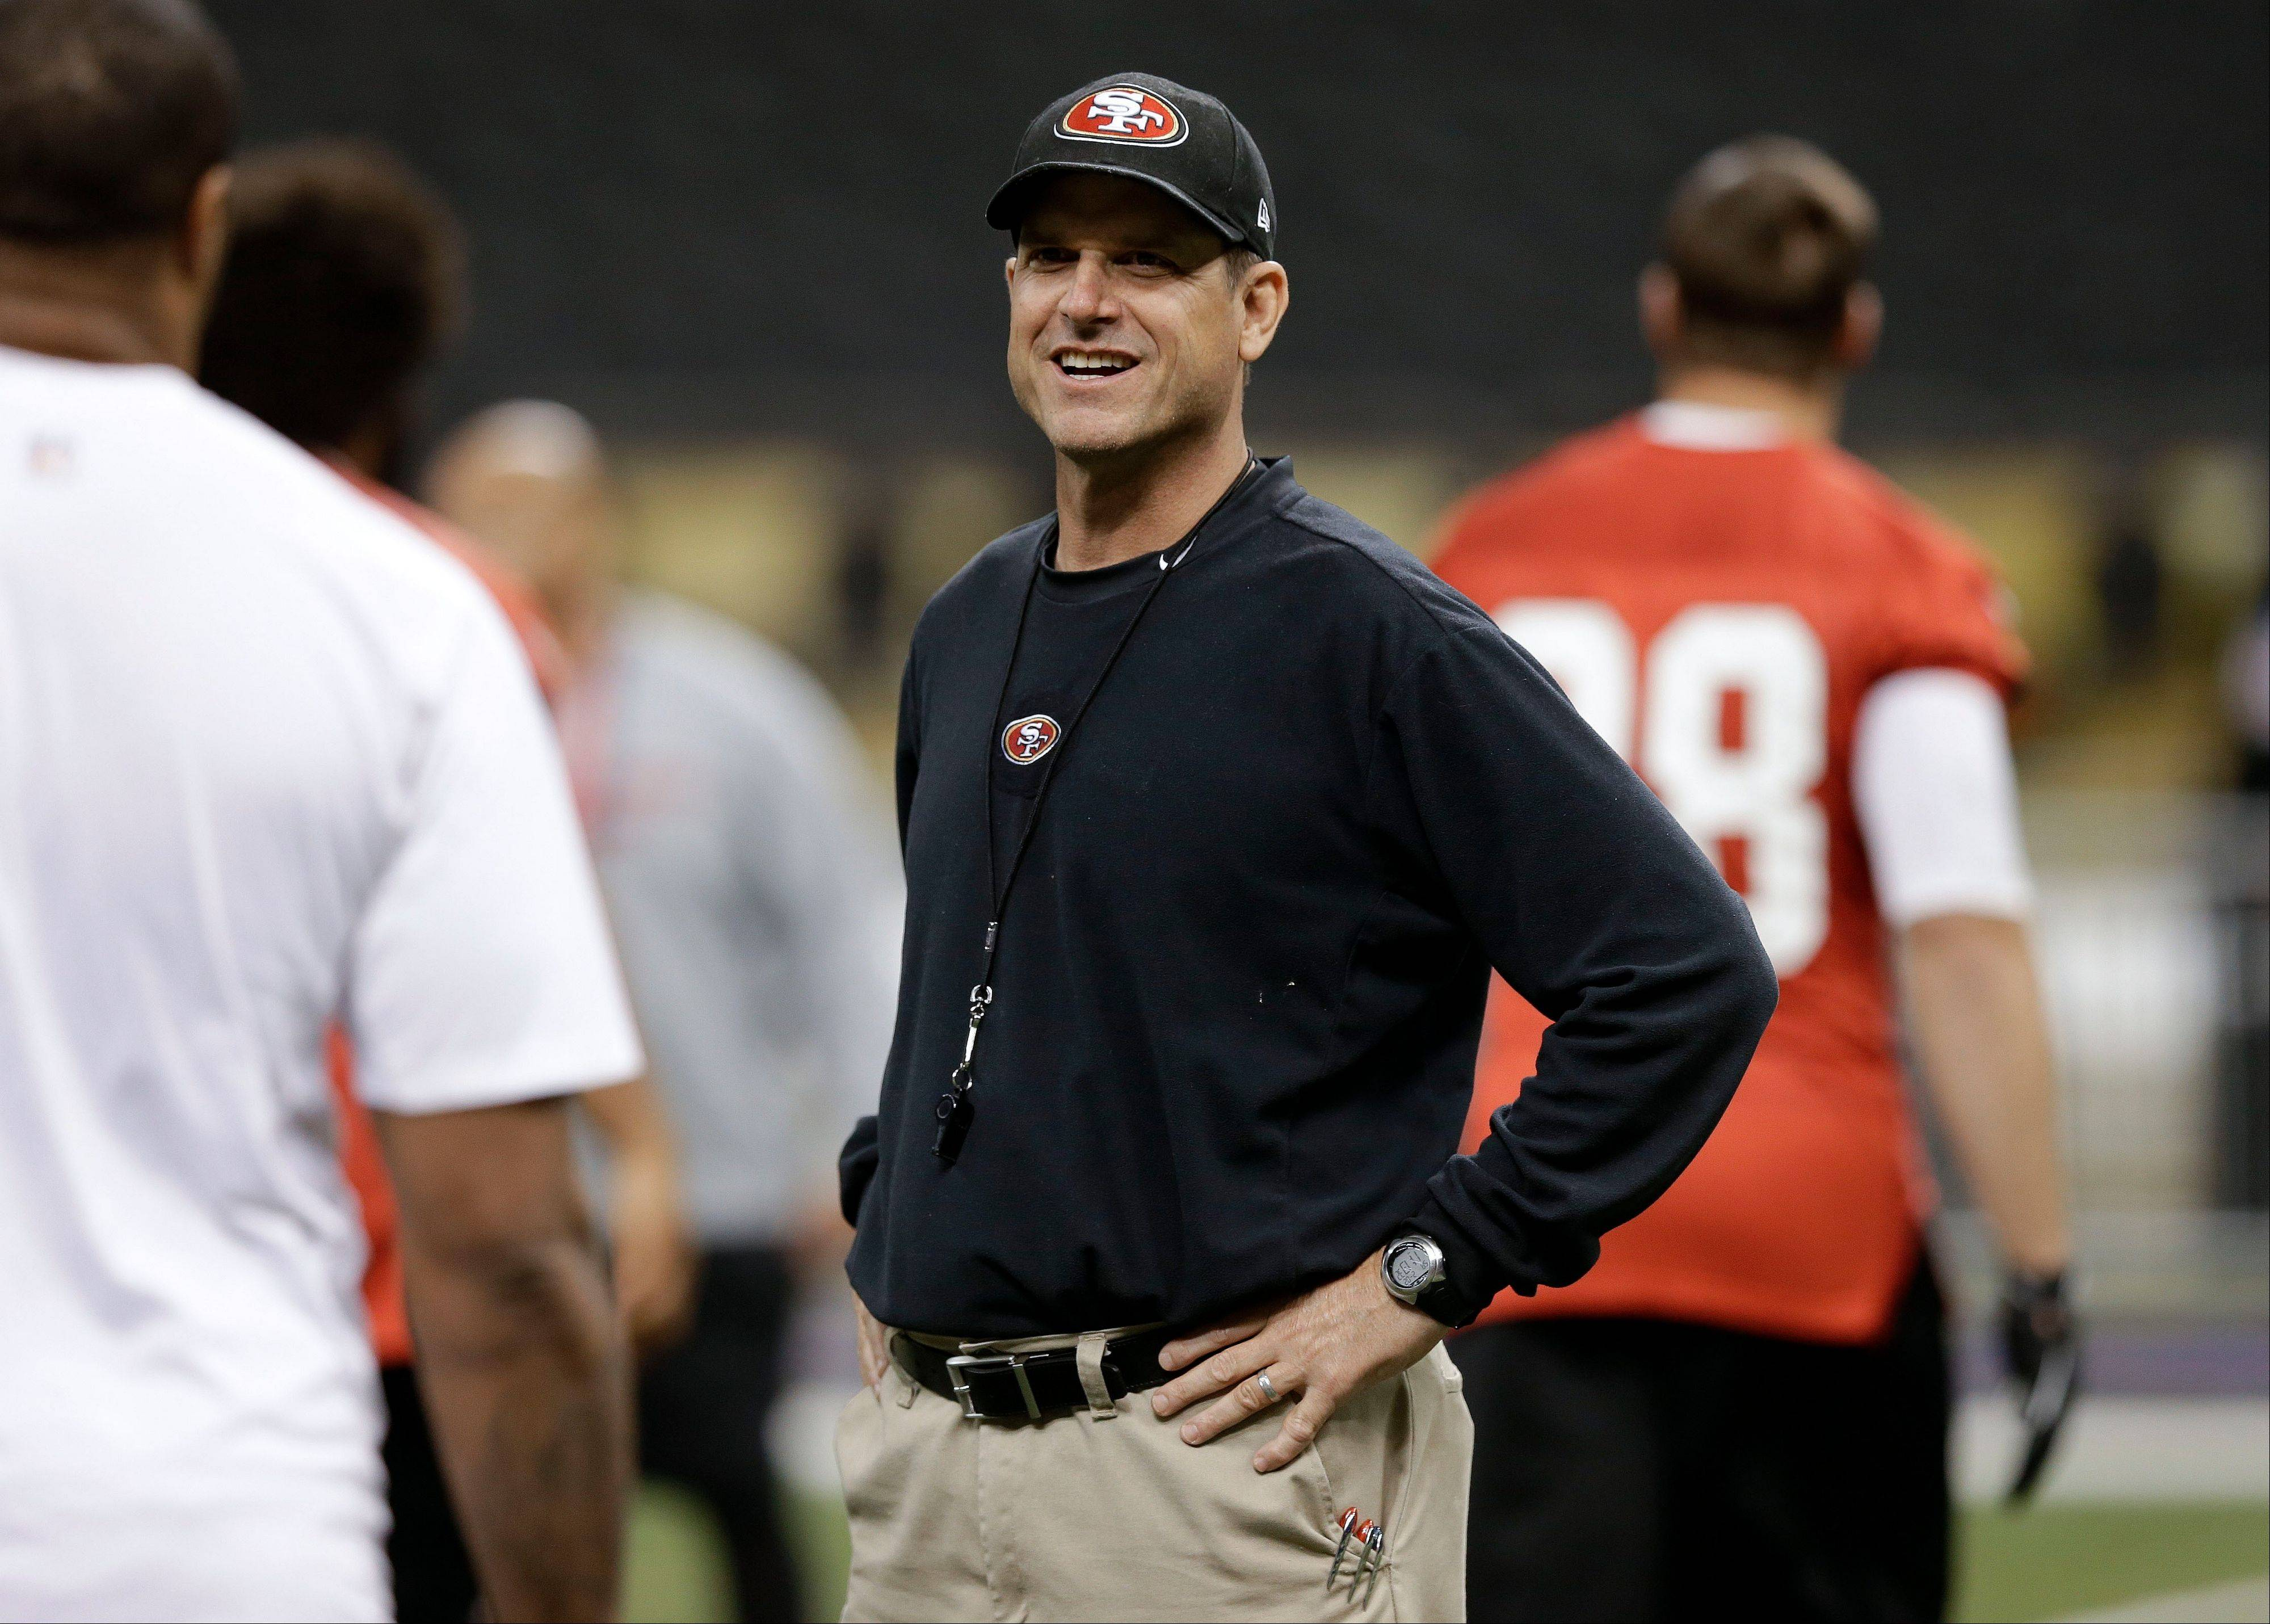 San Francisco 49ers head coach Jim Harbaugh talks with players during practice in the Superdome on Saturday.